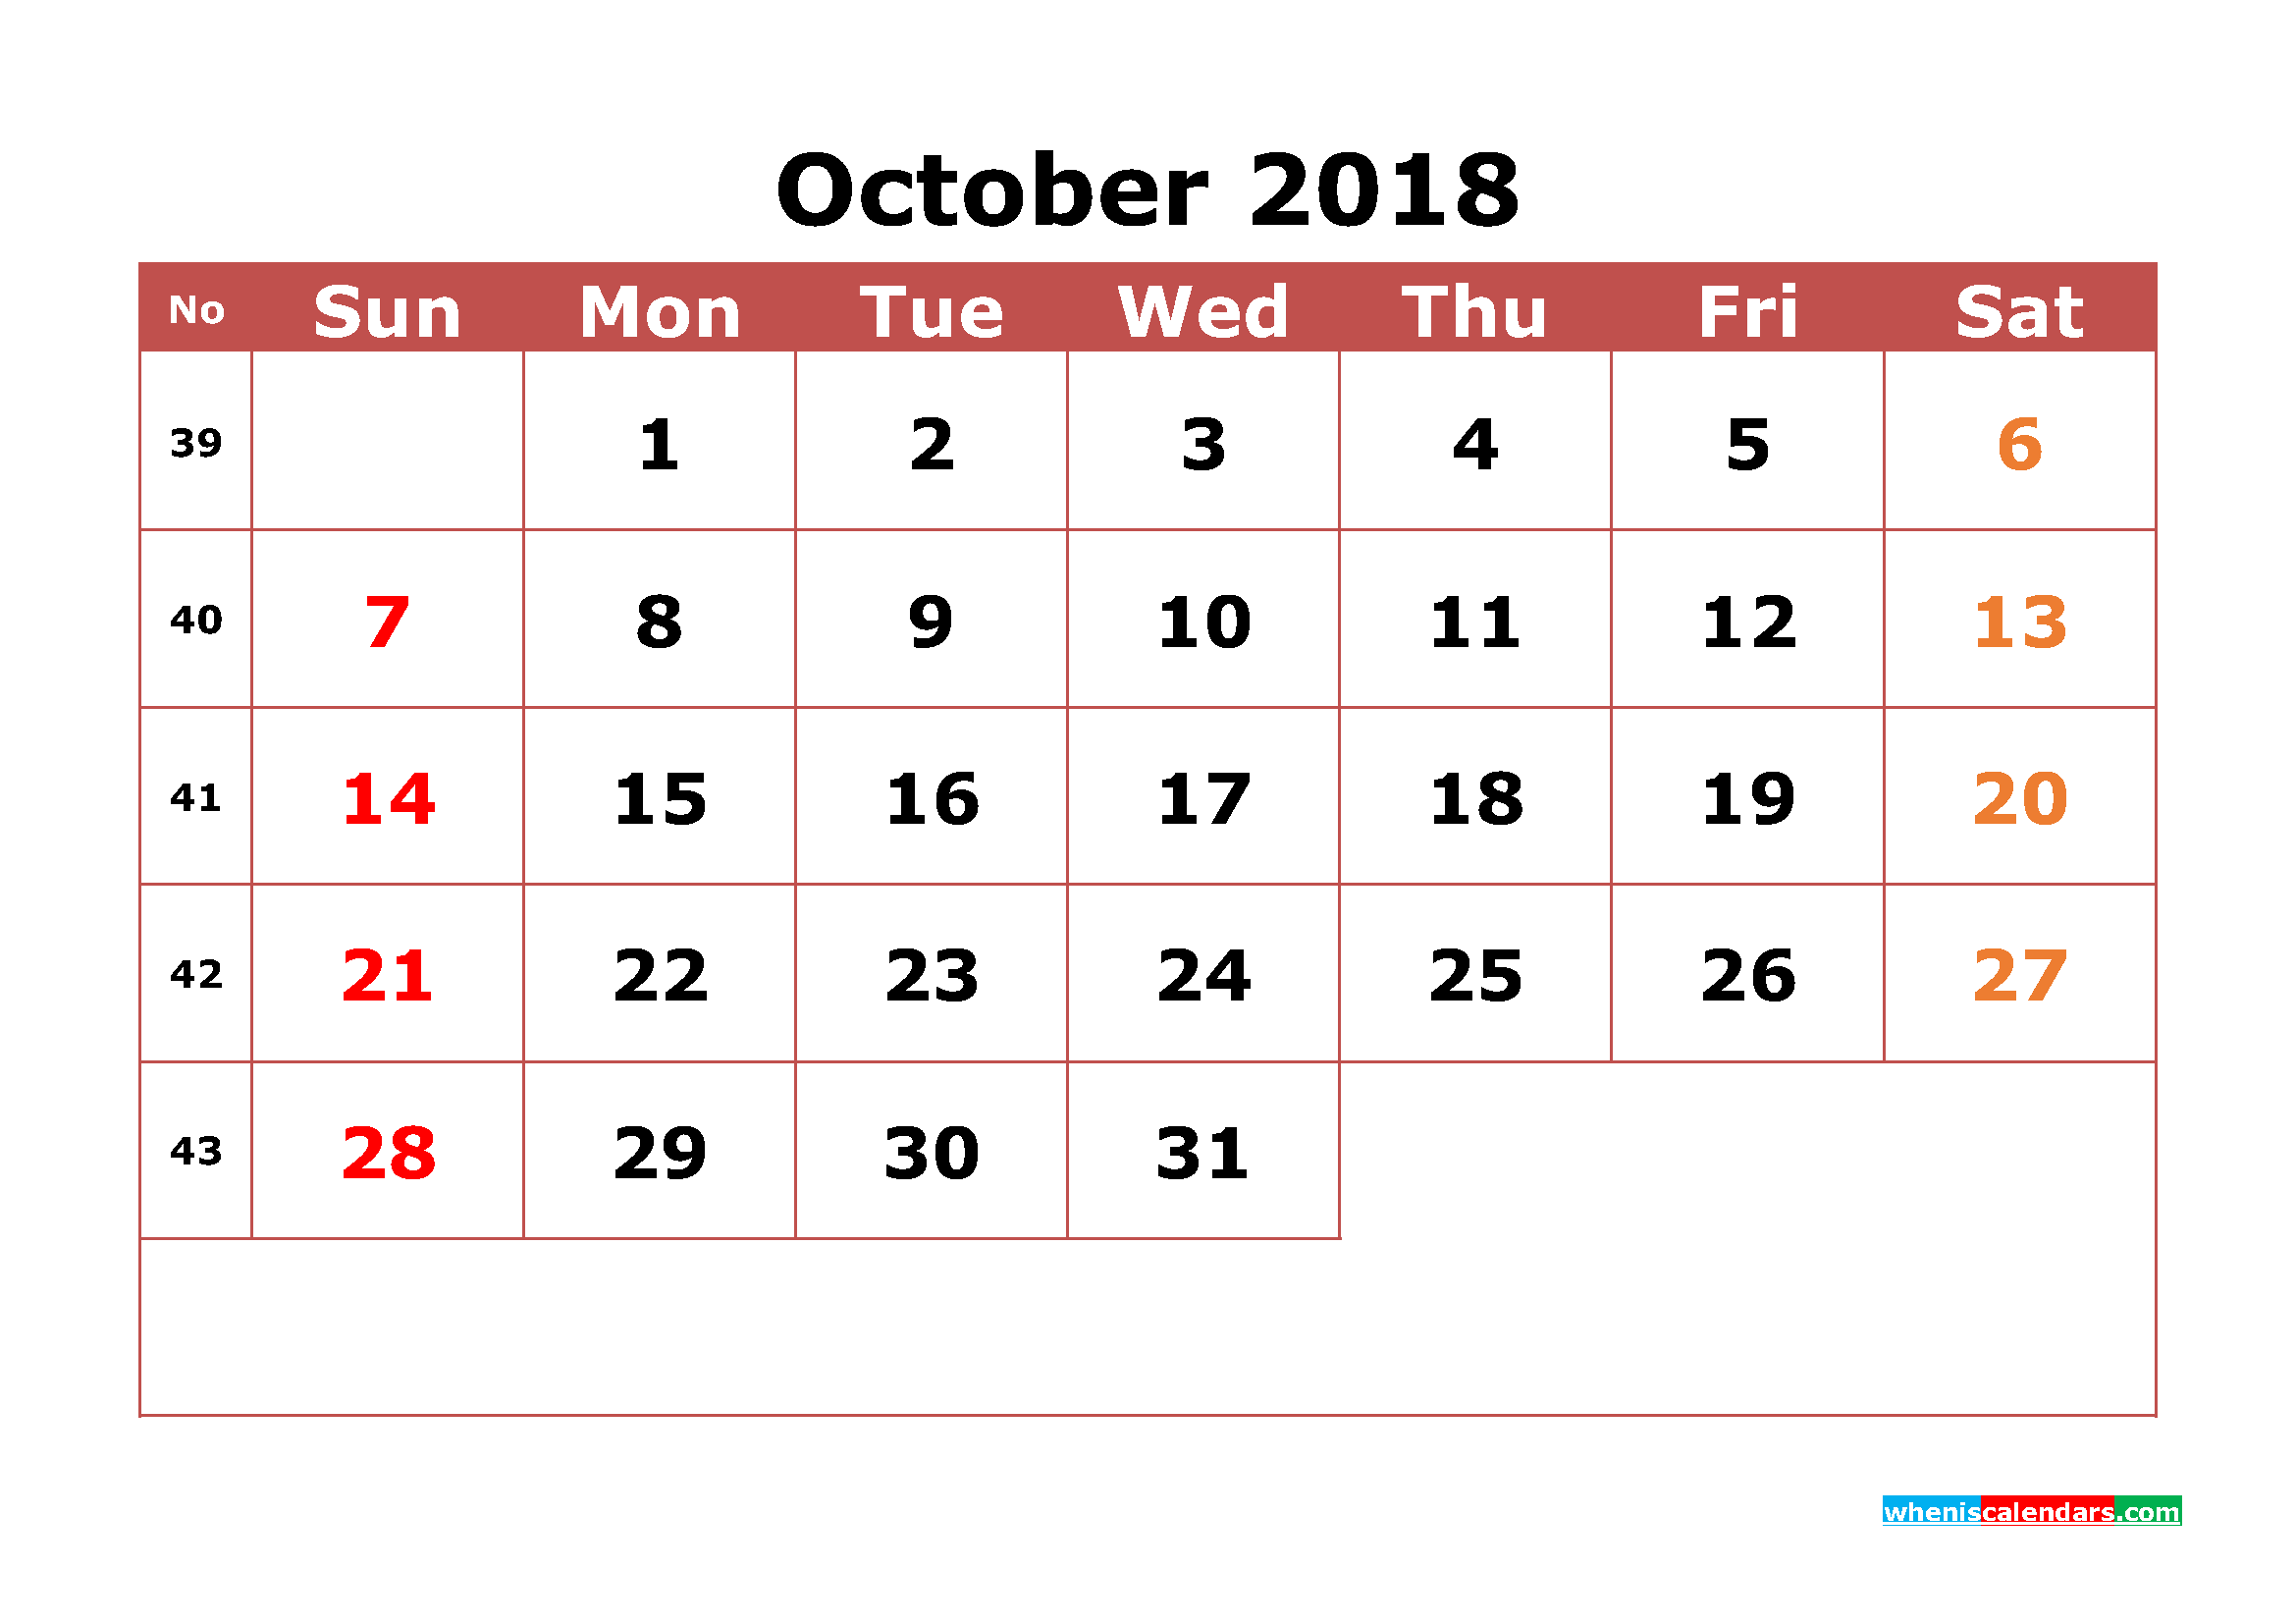 October 2018 Calendar Printable with Week Numbers Image